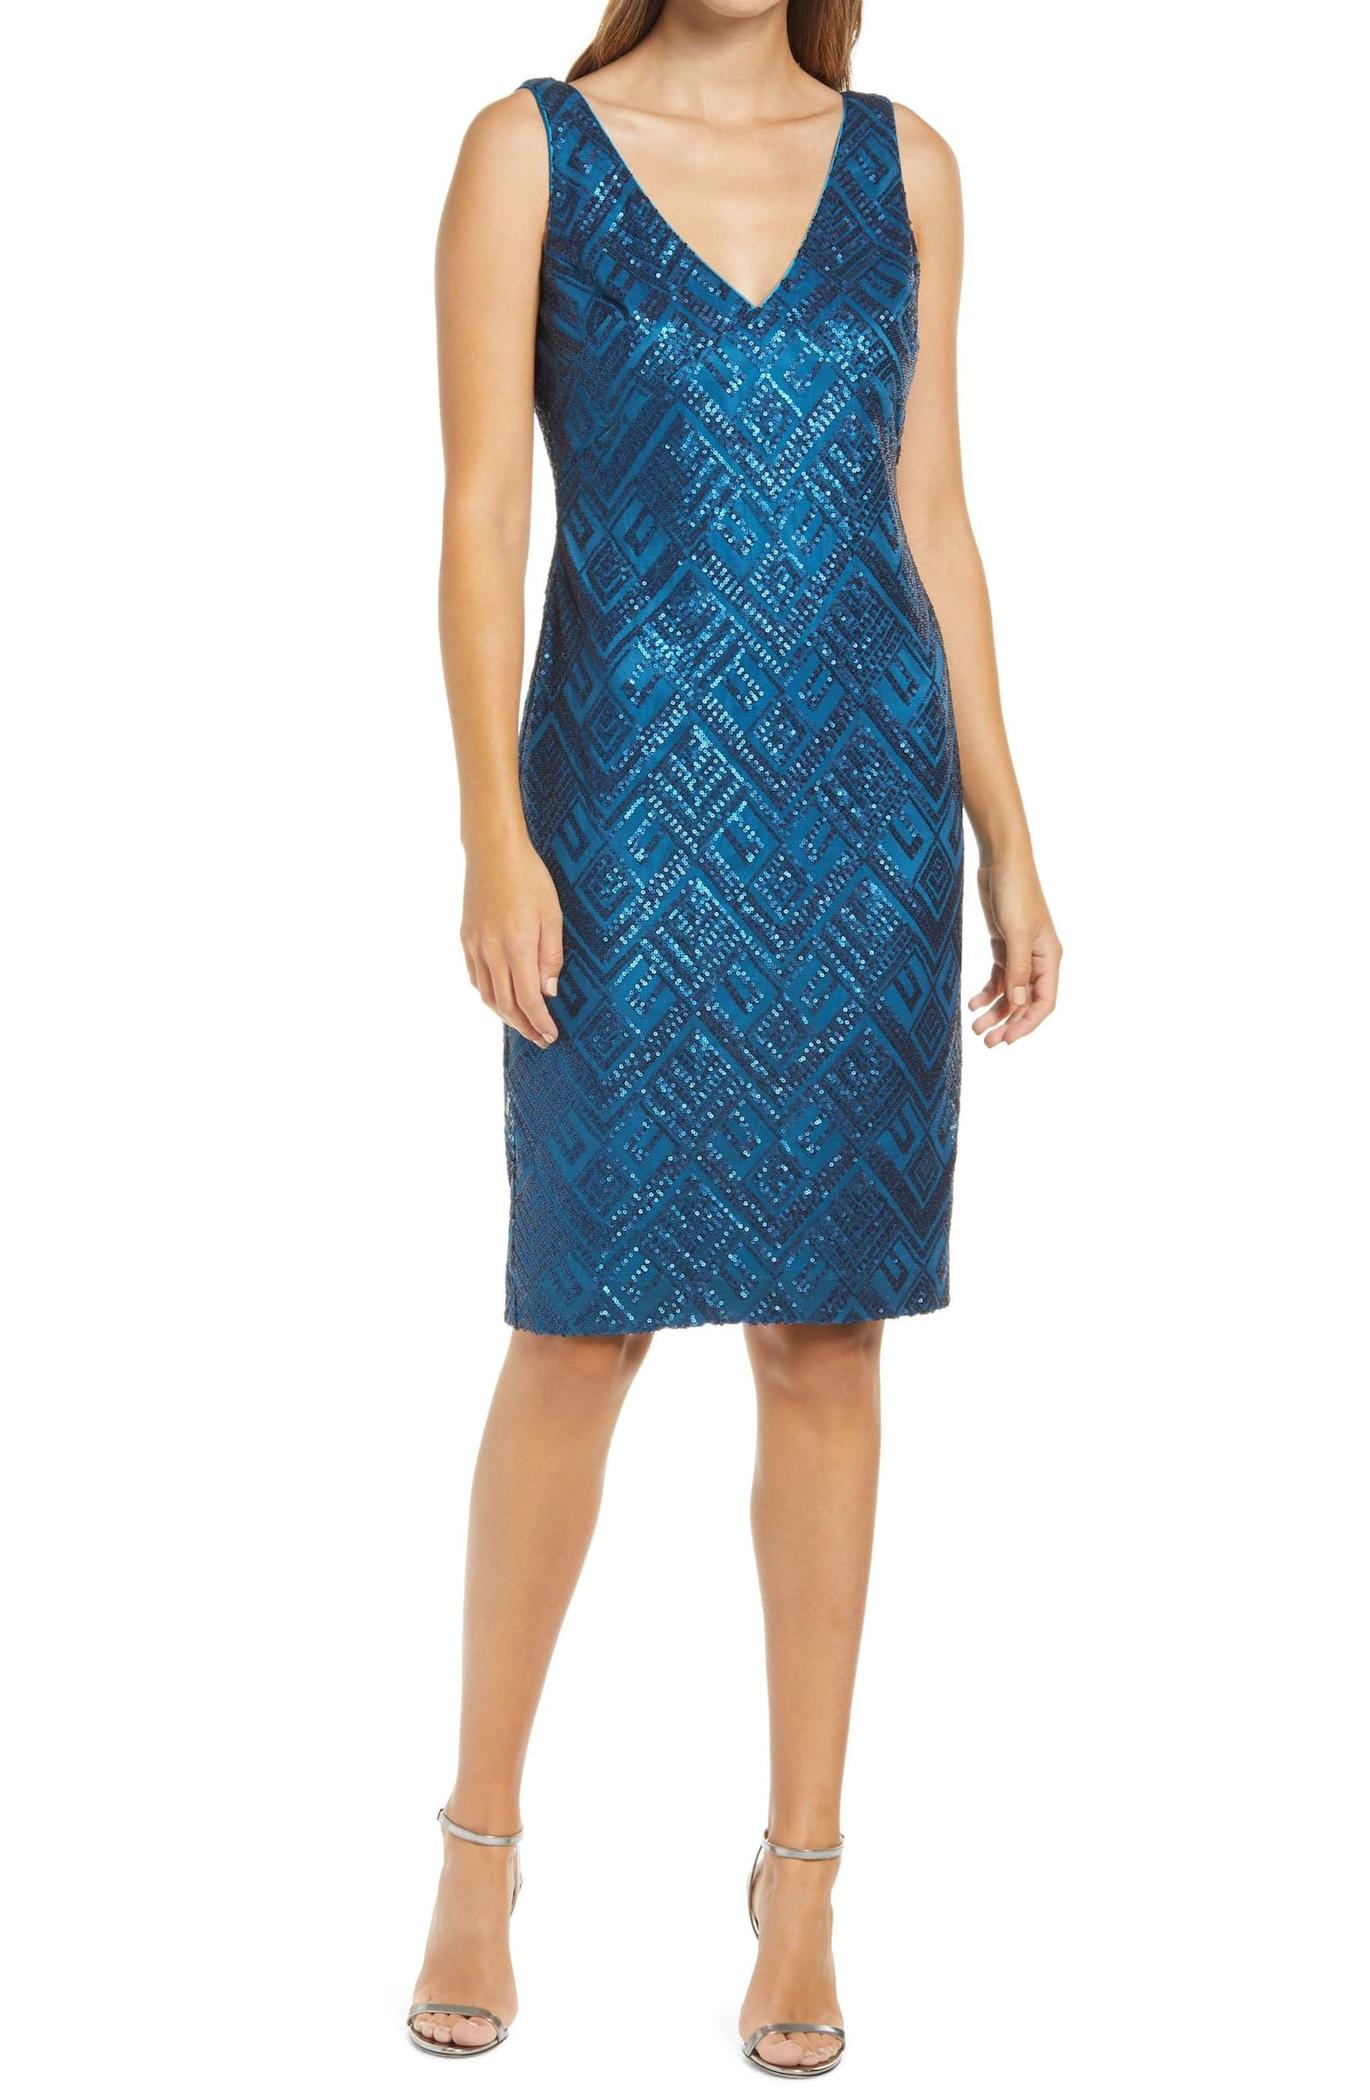 Vince Camuto Sequin Sleeveless Cocktail Dress